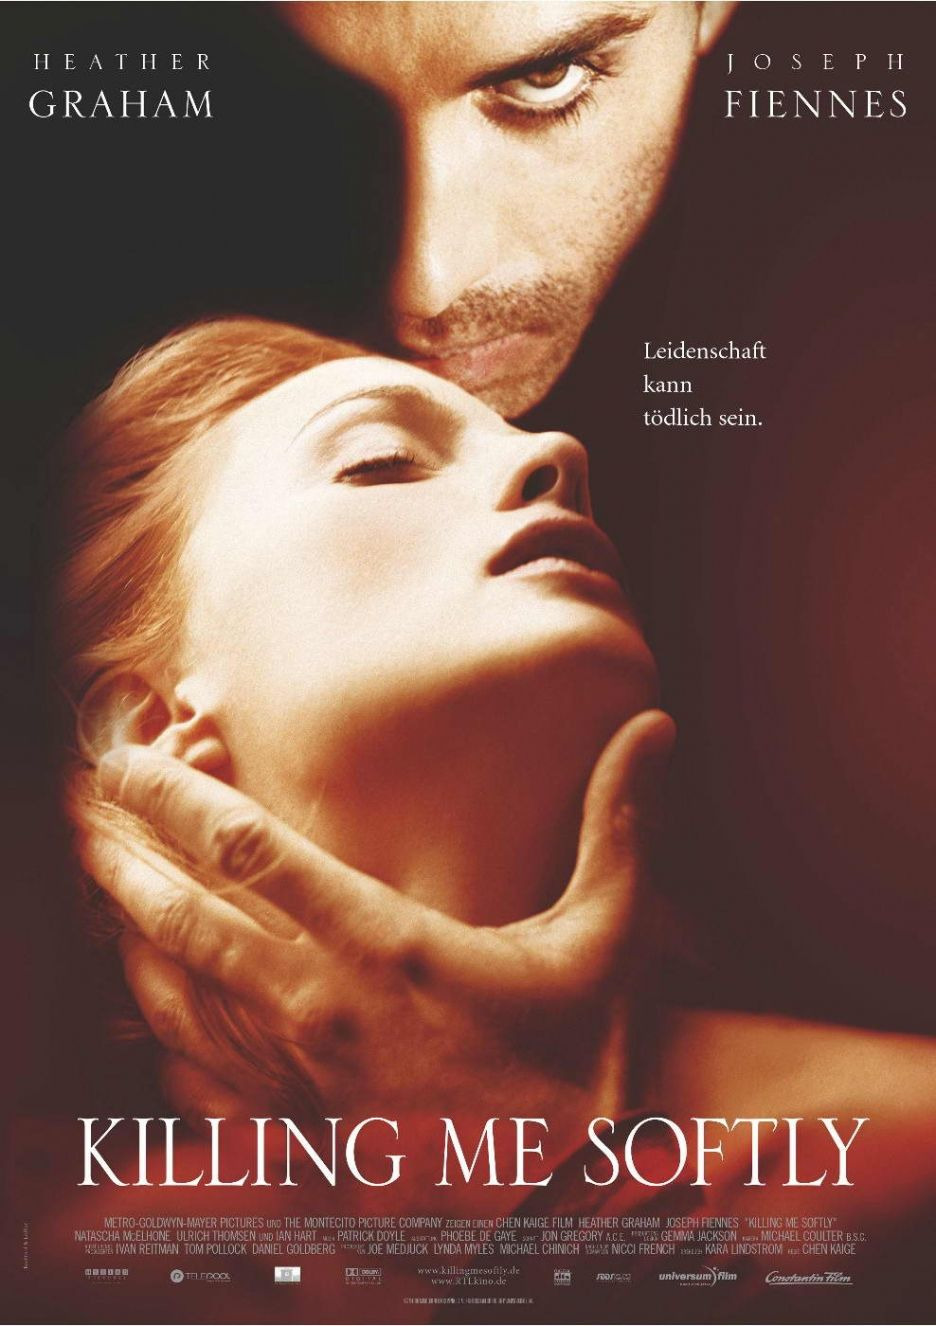 Killing Me Softly with Heather Graham, Joseph Fiennes and Natasha